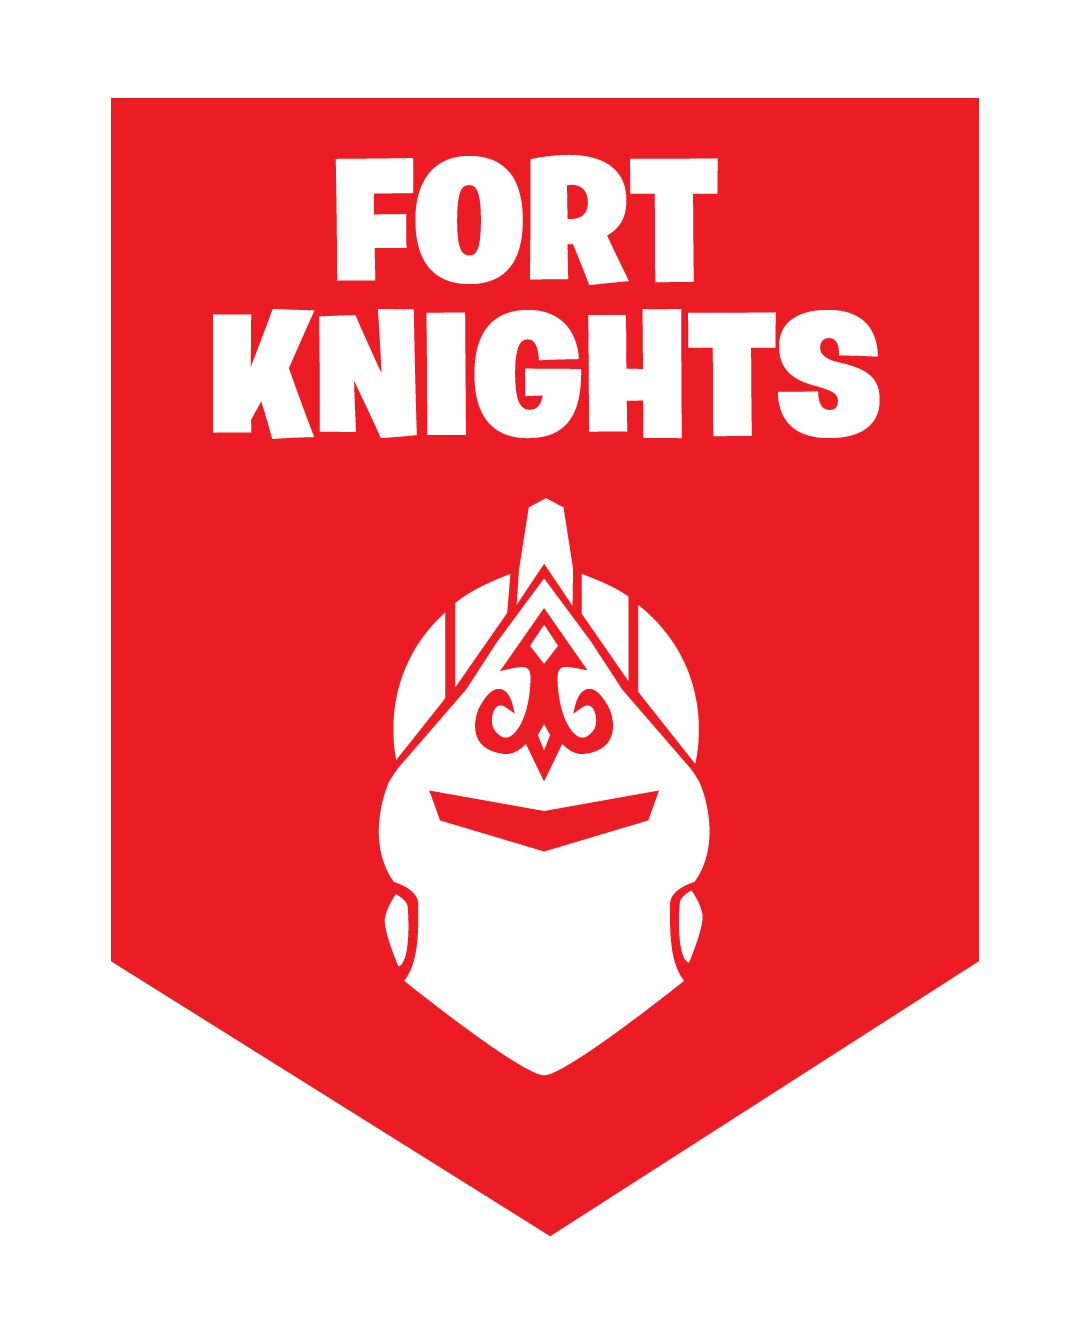 FortKnights.png